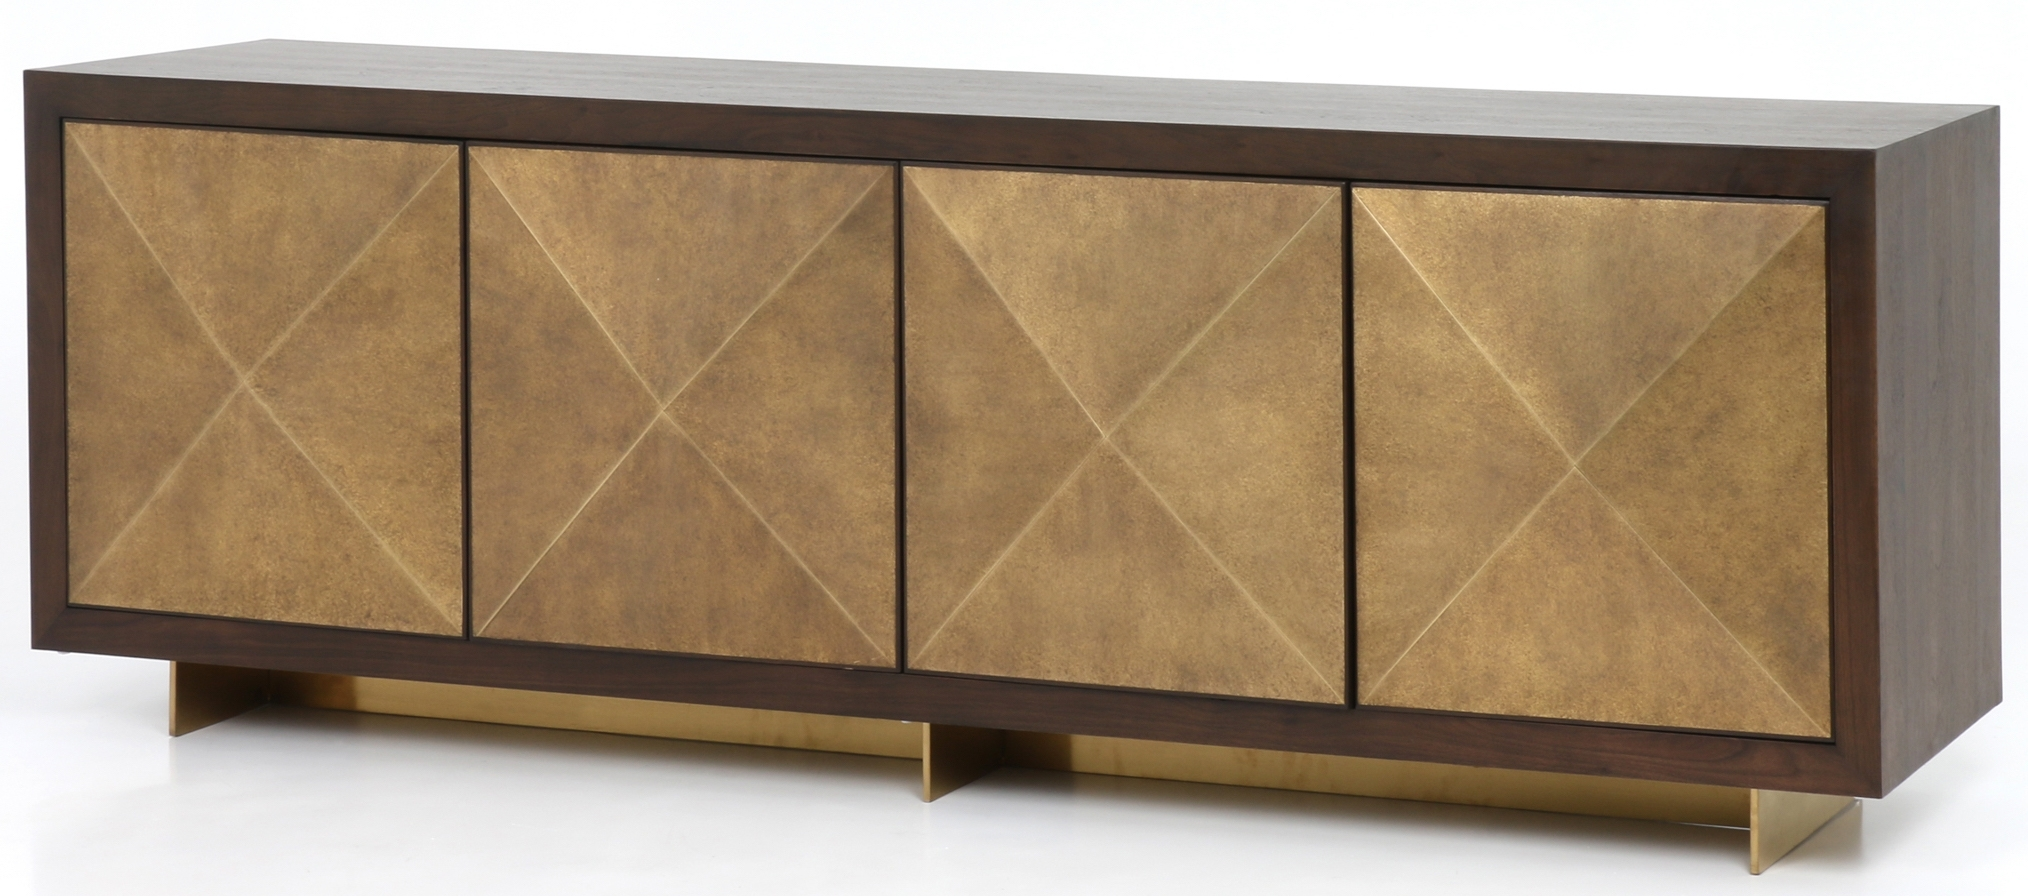 Cabinets, Consoles & Sofa Tables | Htgt Furniture with regard to Gunmetal Perforated Brass Sideboards (Image 12 of 30)